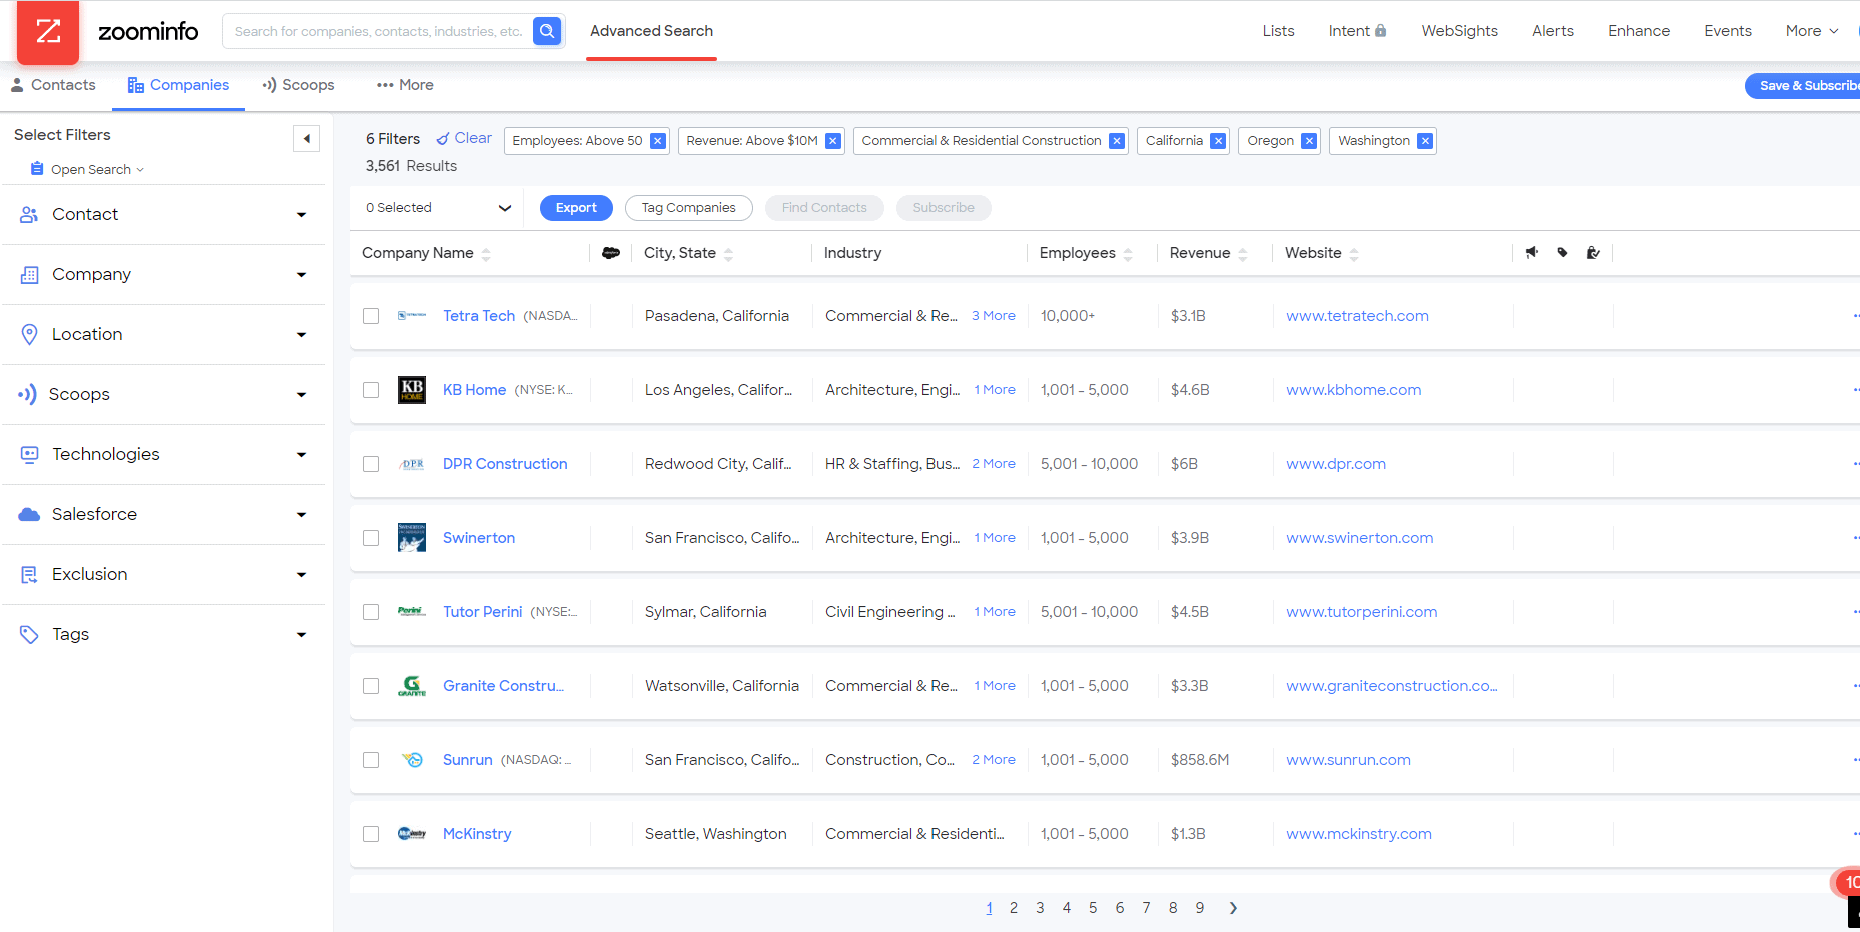 ZoomInfo Advanced Search